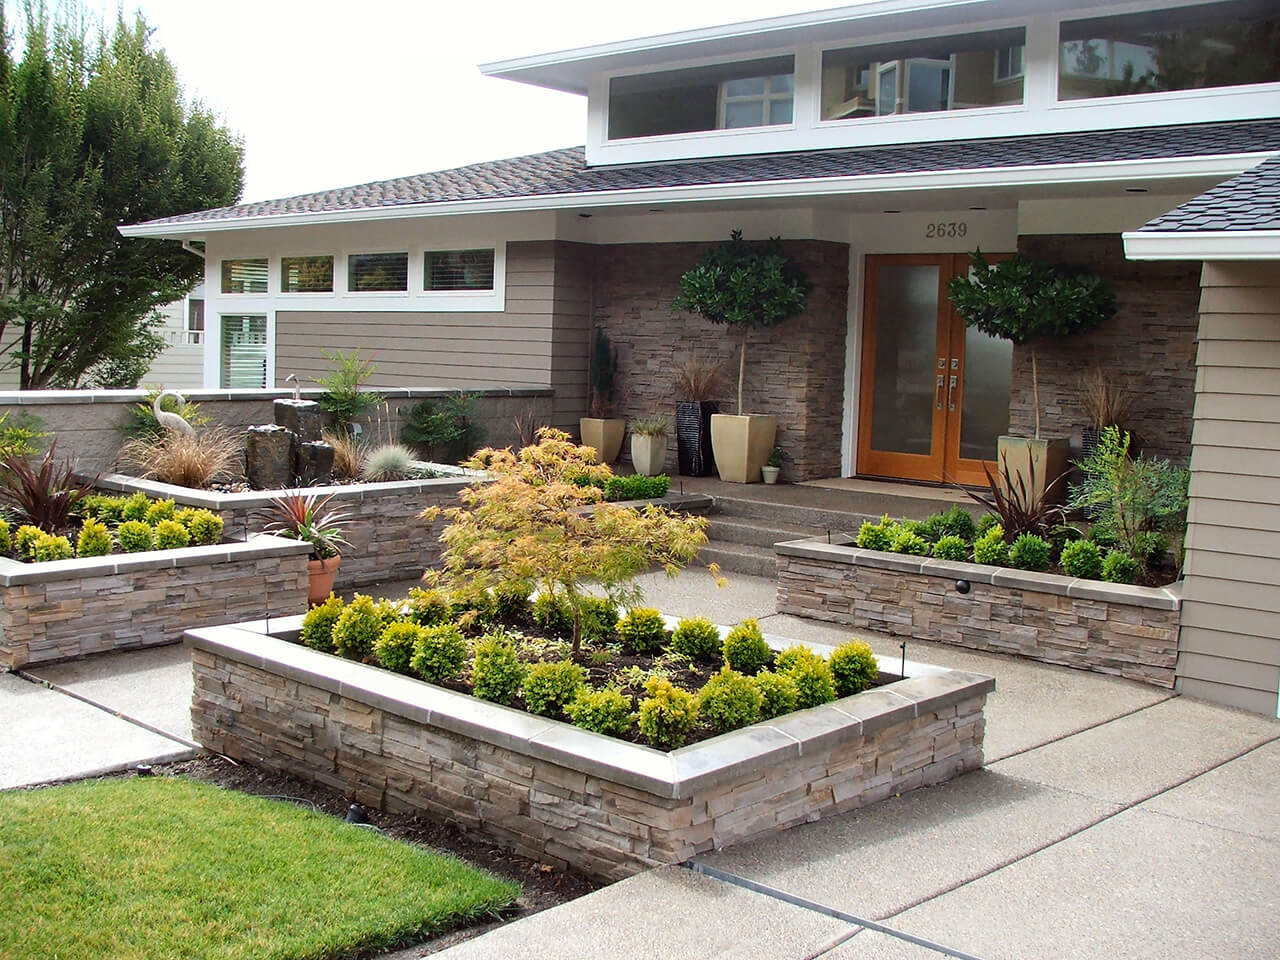 20 brilliant front garden landscaping ideas style motivation for Front lawn garden ideas